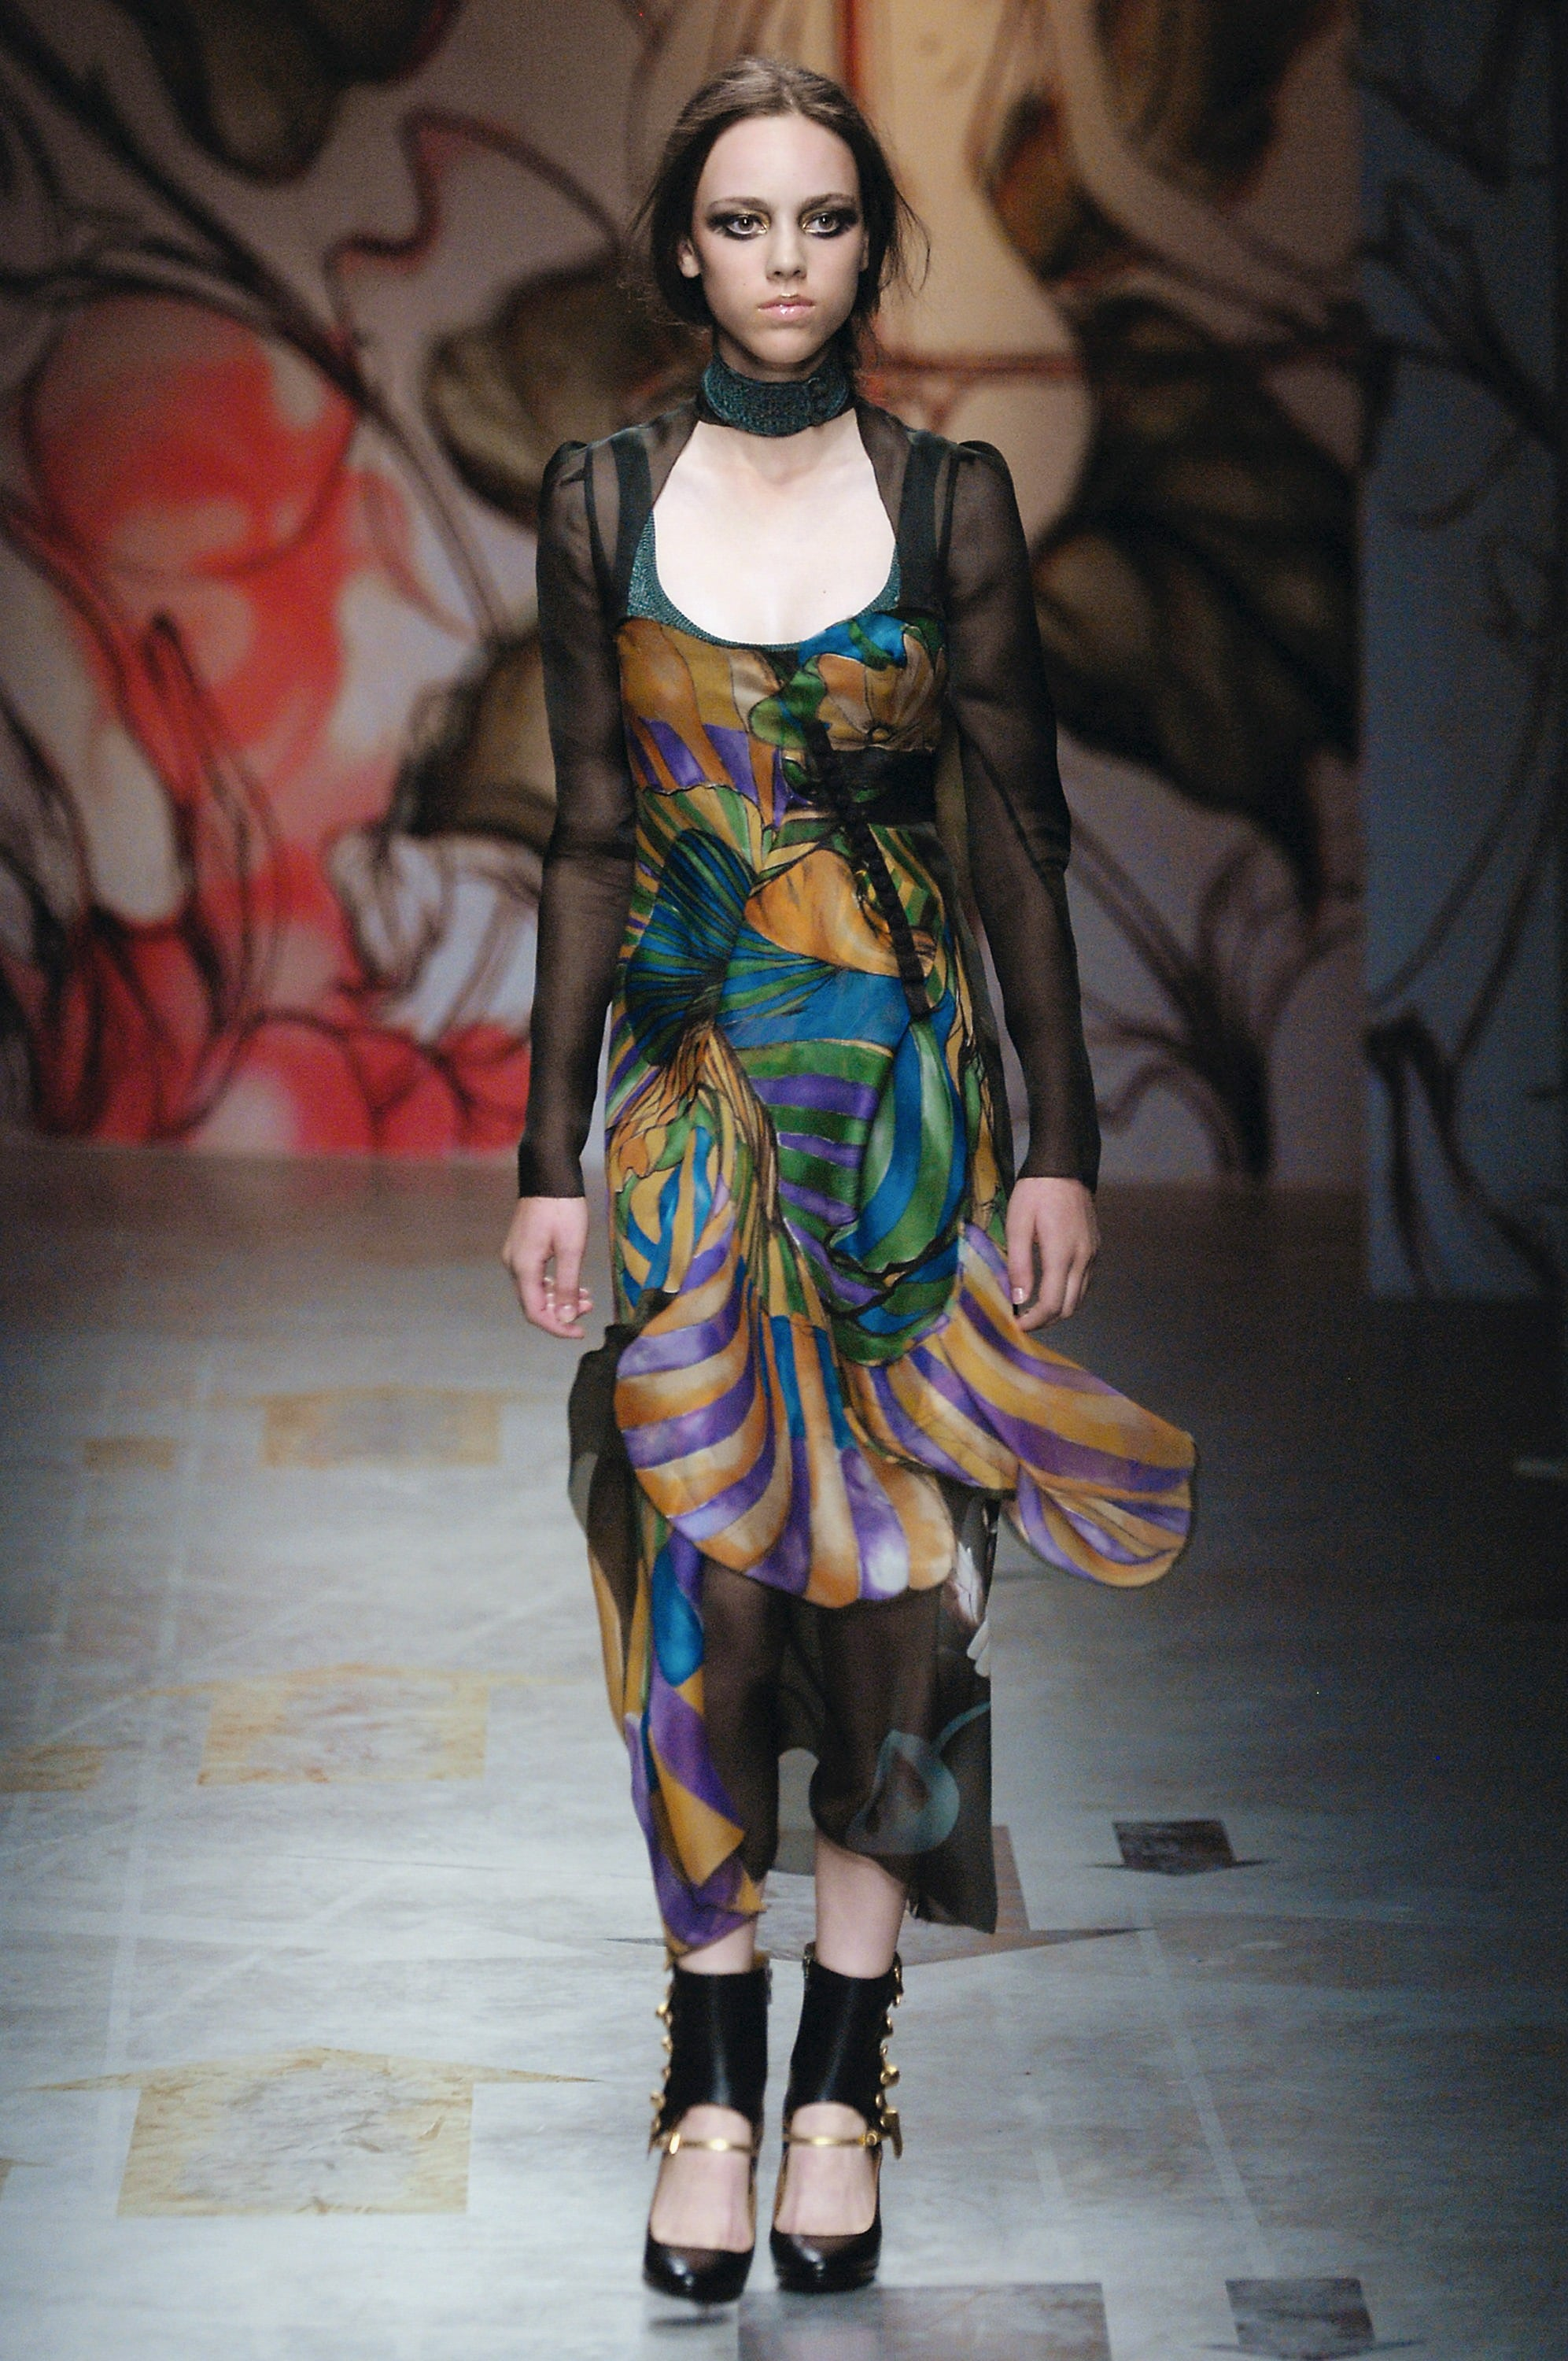 Spring Peek: Avant-Garde and the Funky Bunch